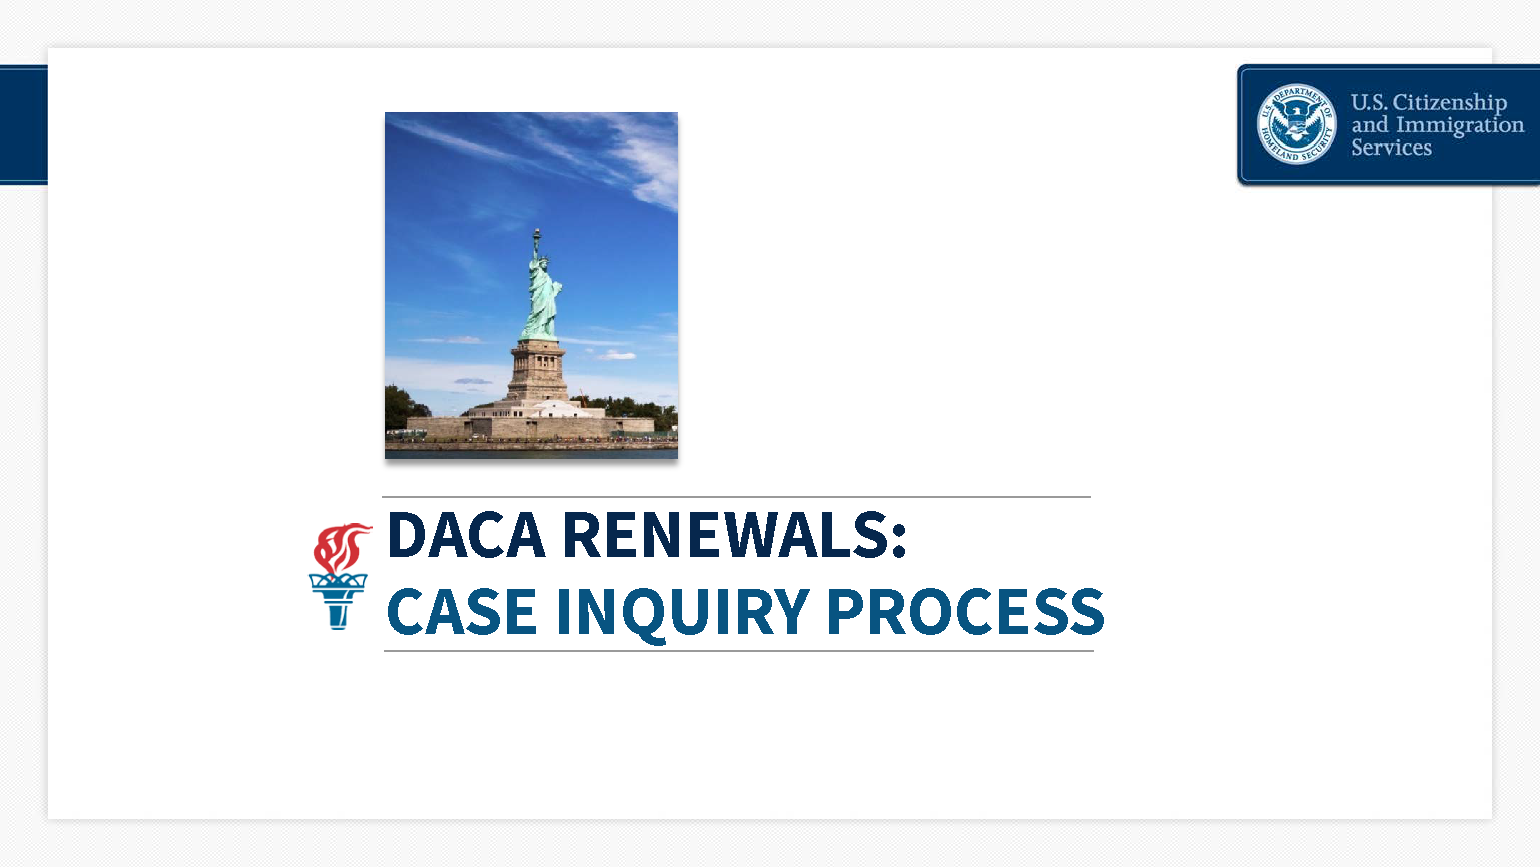 Case_Inquiry_Process_for_DACA_Renewals_0_Page_01.png